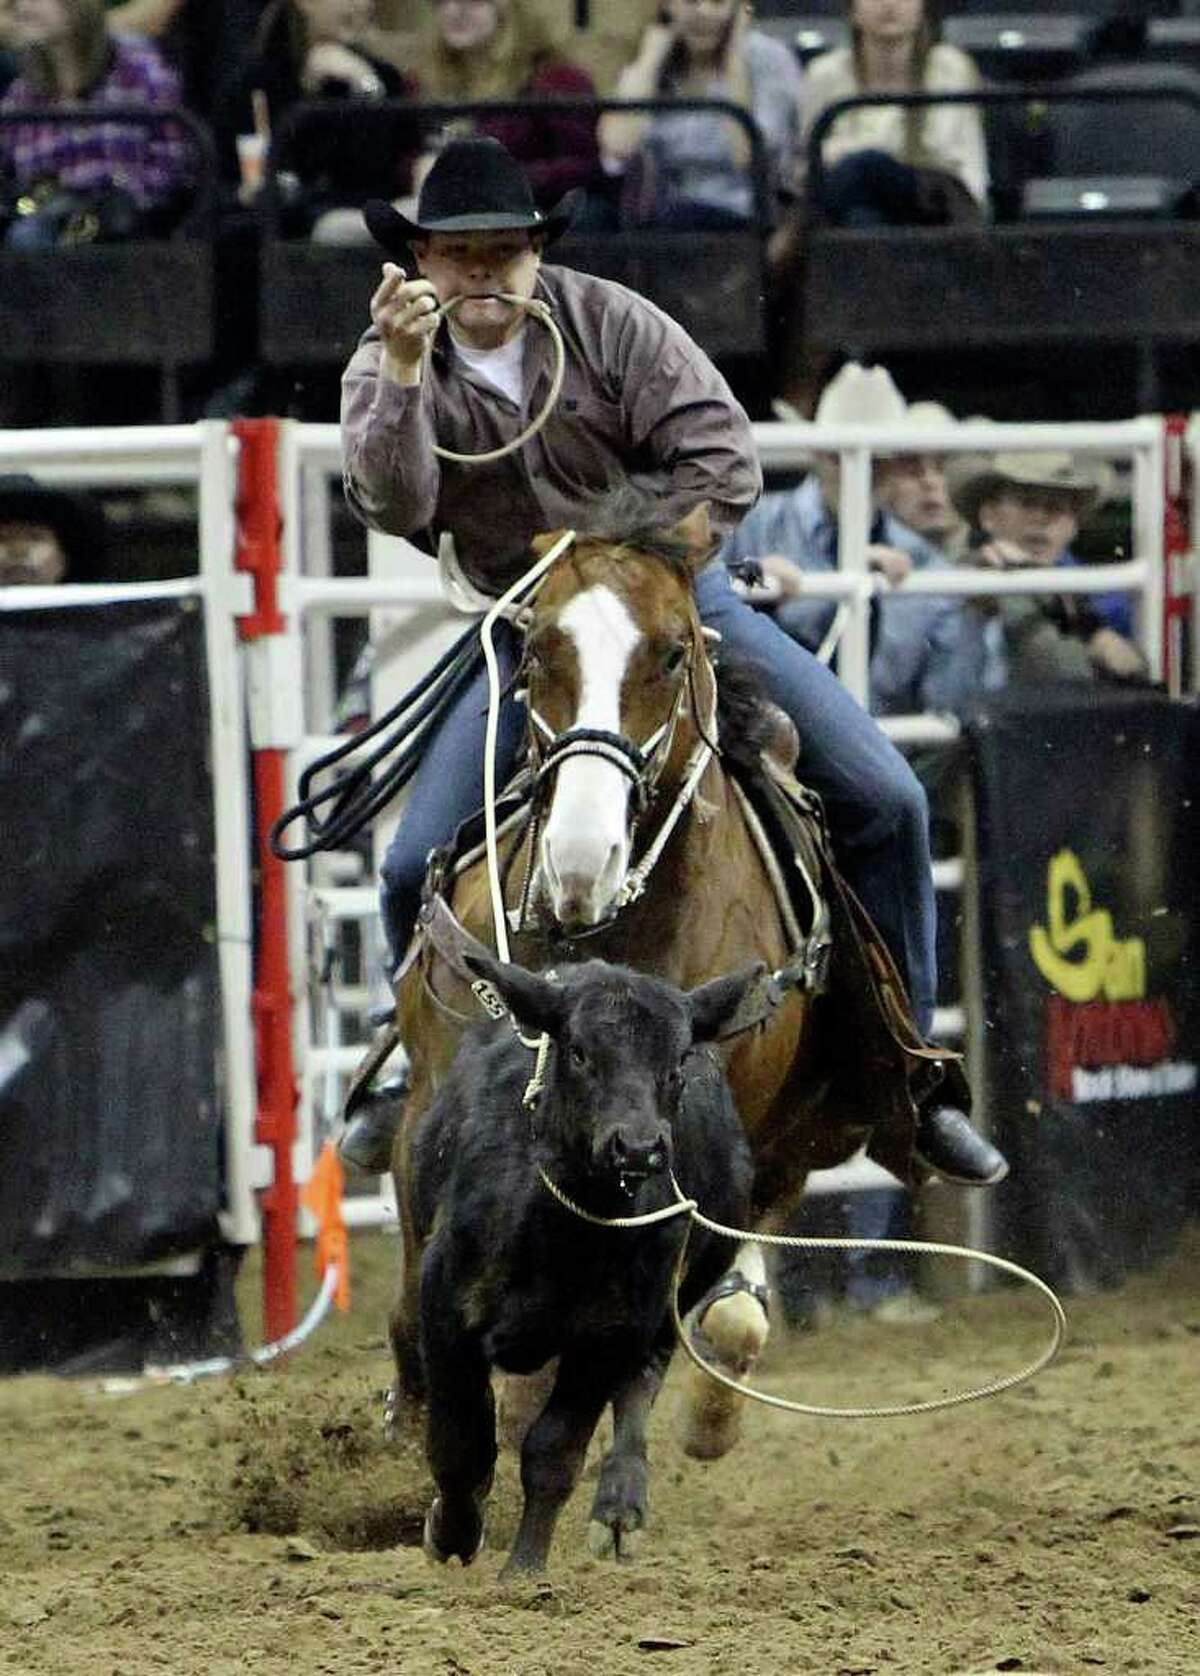 Matt Shiozawa of Chubbuck, ID competes in the tie-down roping competition at the 2011 San Antonio Stock Show & Rodeo at the AT&T Center on Friday, Feb. 11, 2011. Kin Man Hui/kmhui@express-news.net